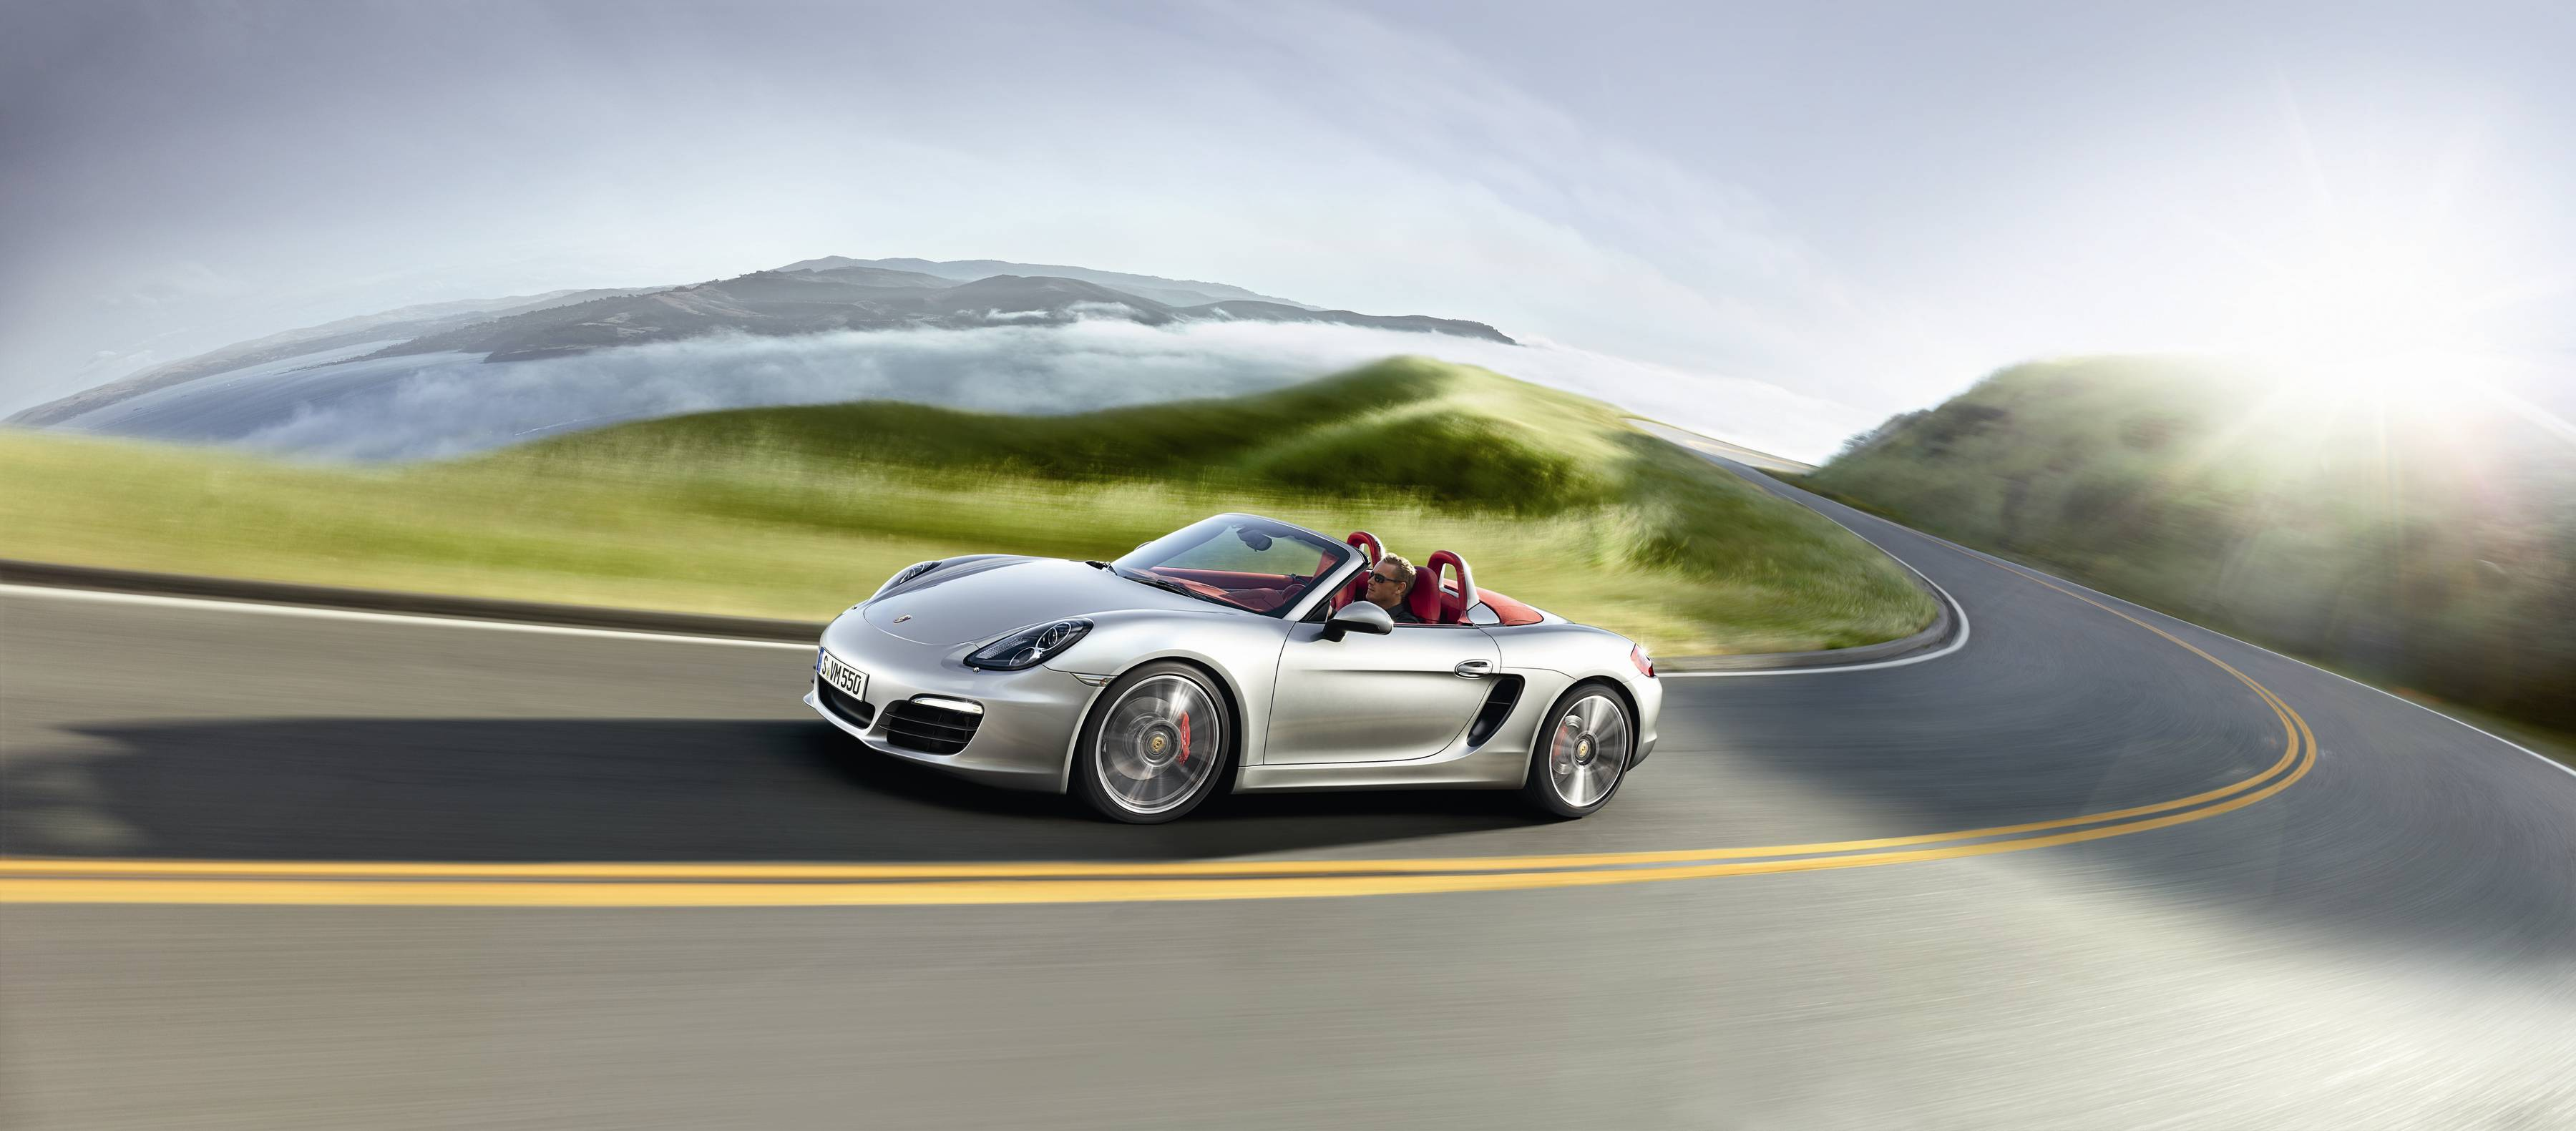 Brumos Porsche to Unveil the Definitive New Boxster on June 27